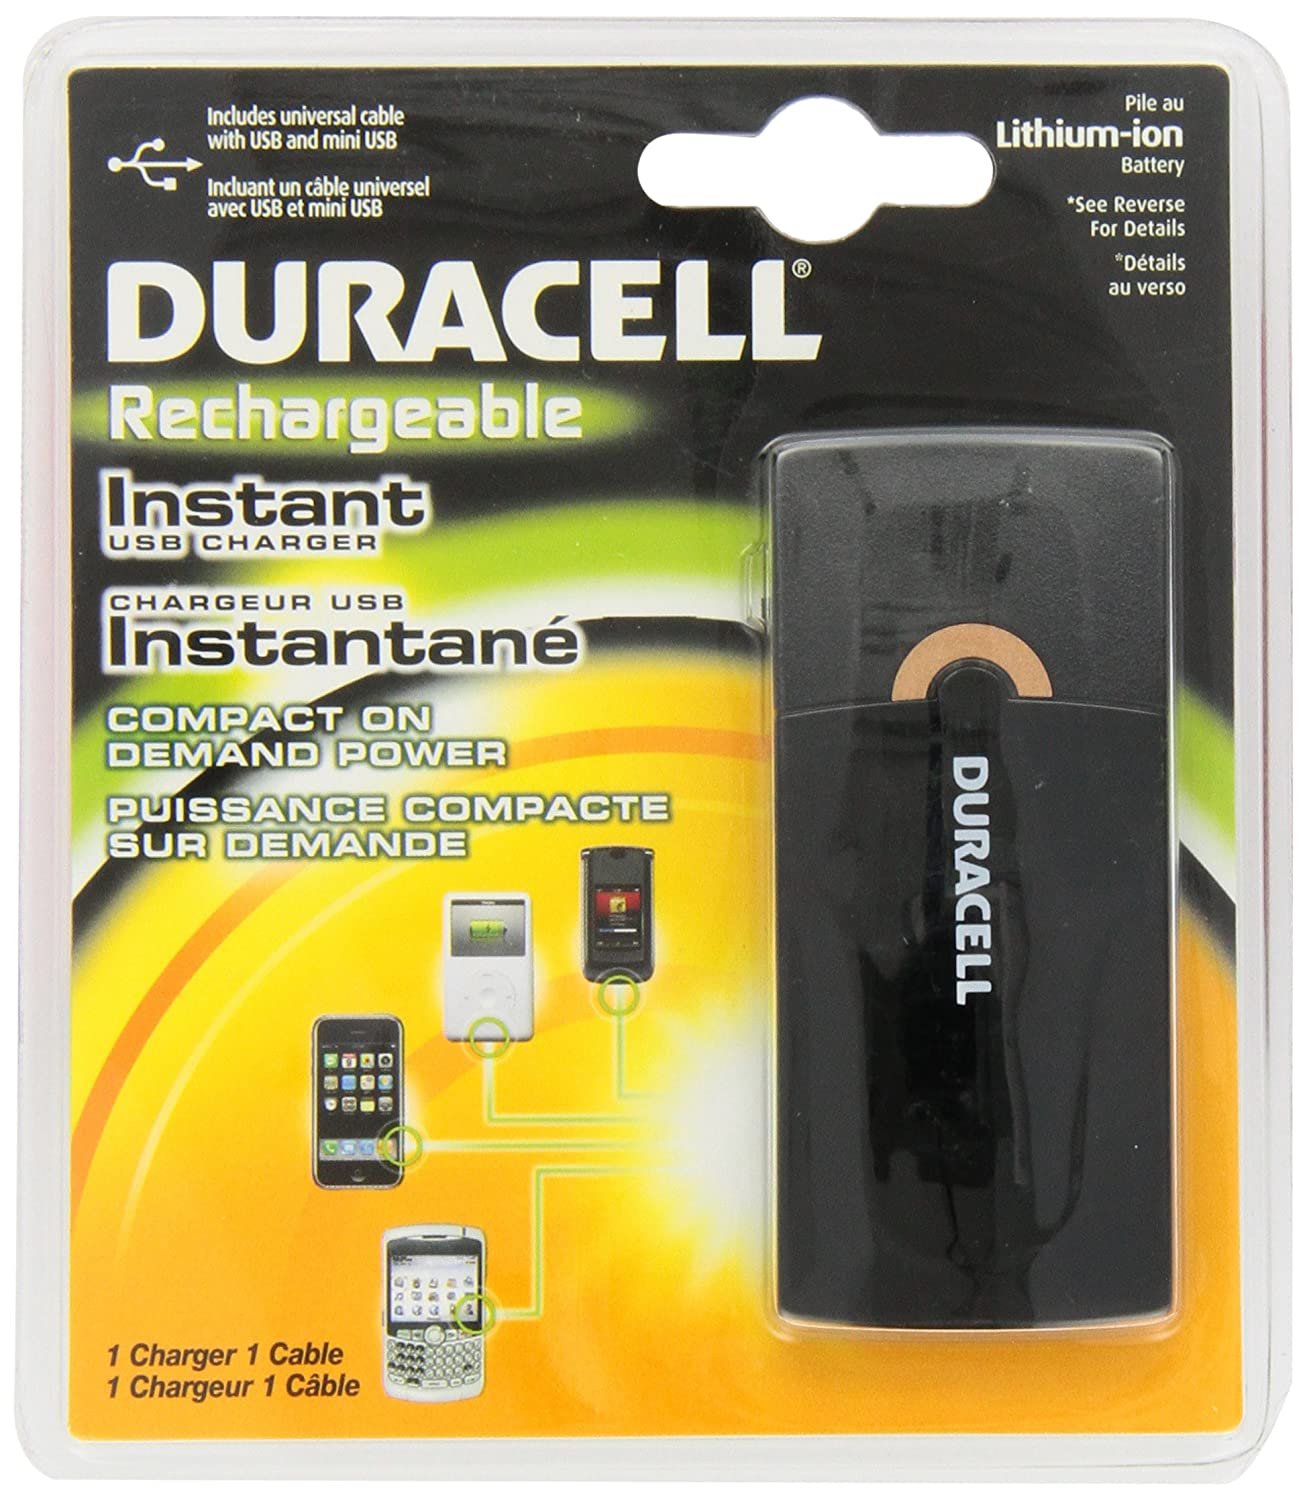 Duracell Rechargeable Instant USB Charger